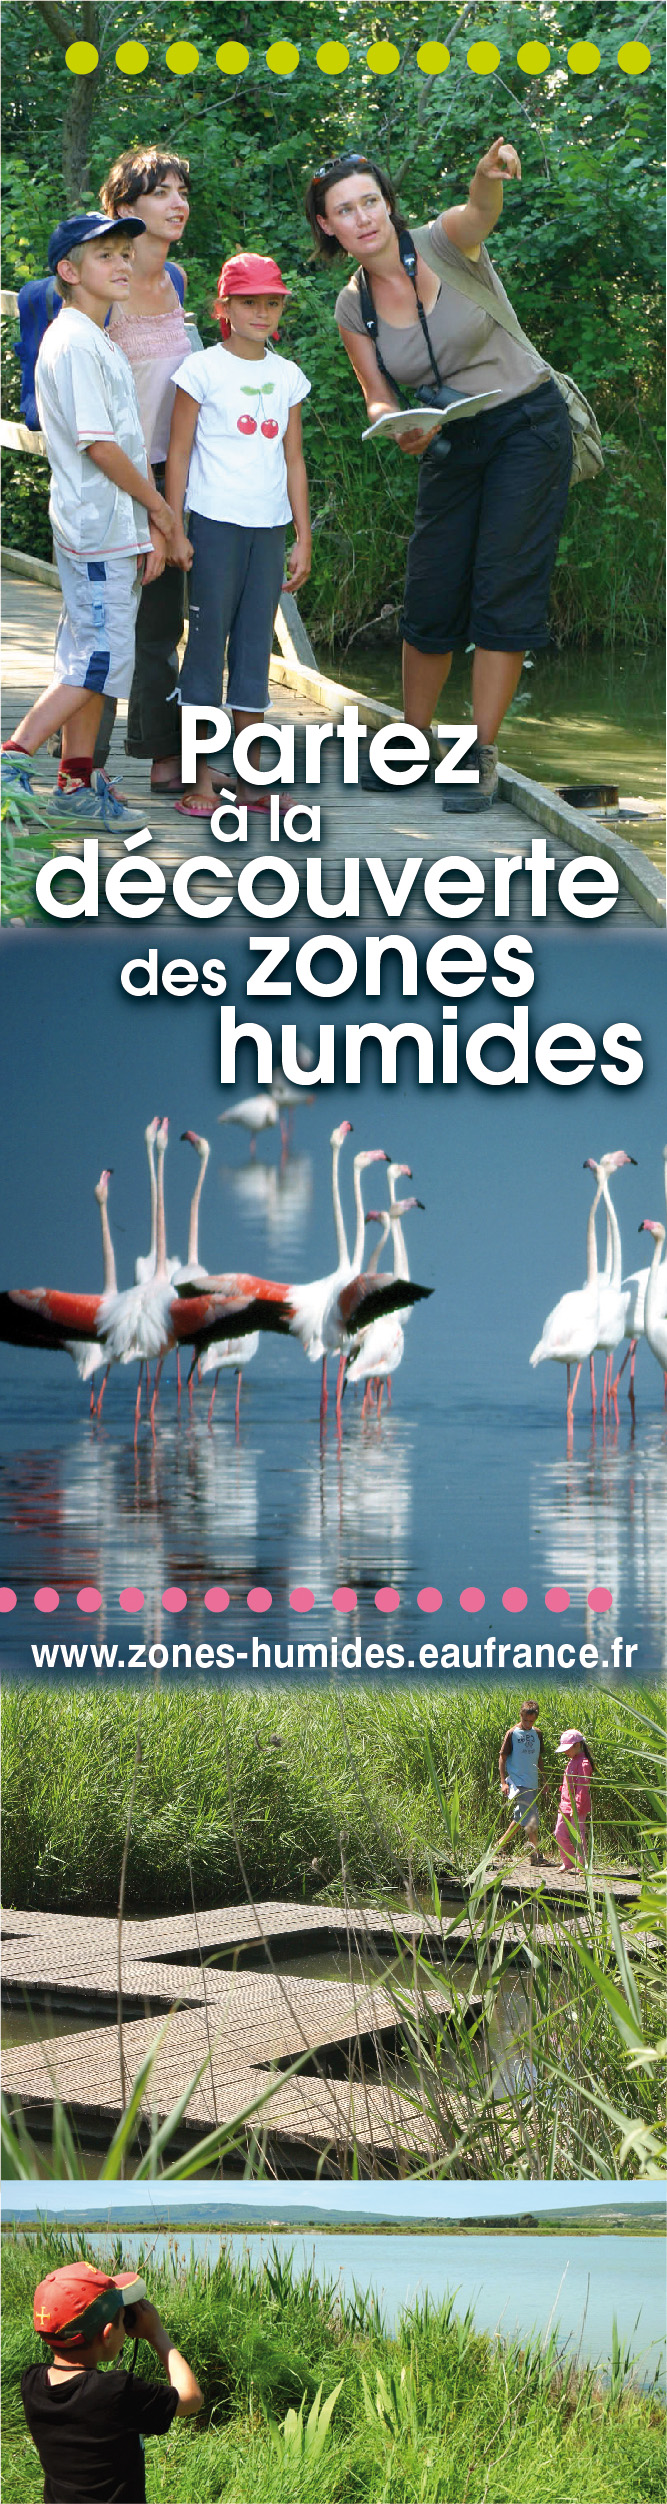 http://www.zones-humides.eaufrance.fr/sites/default/files/images/JMZH/2016/bandeaux%20themes_B_vB1.jpg